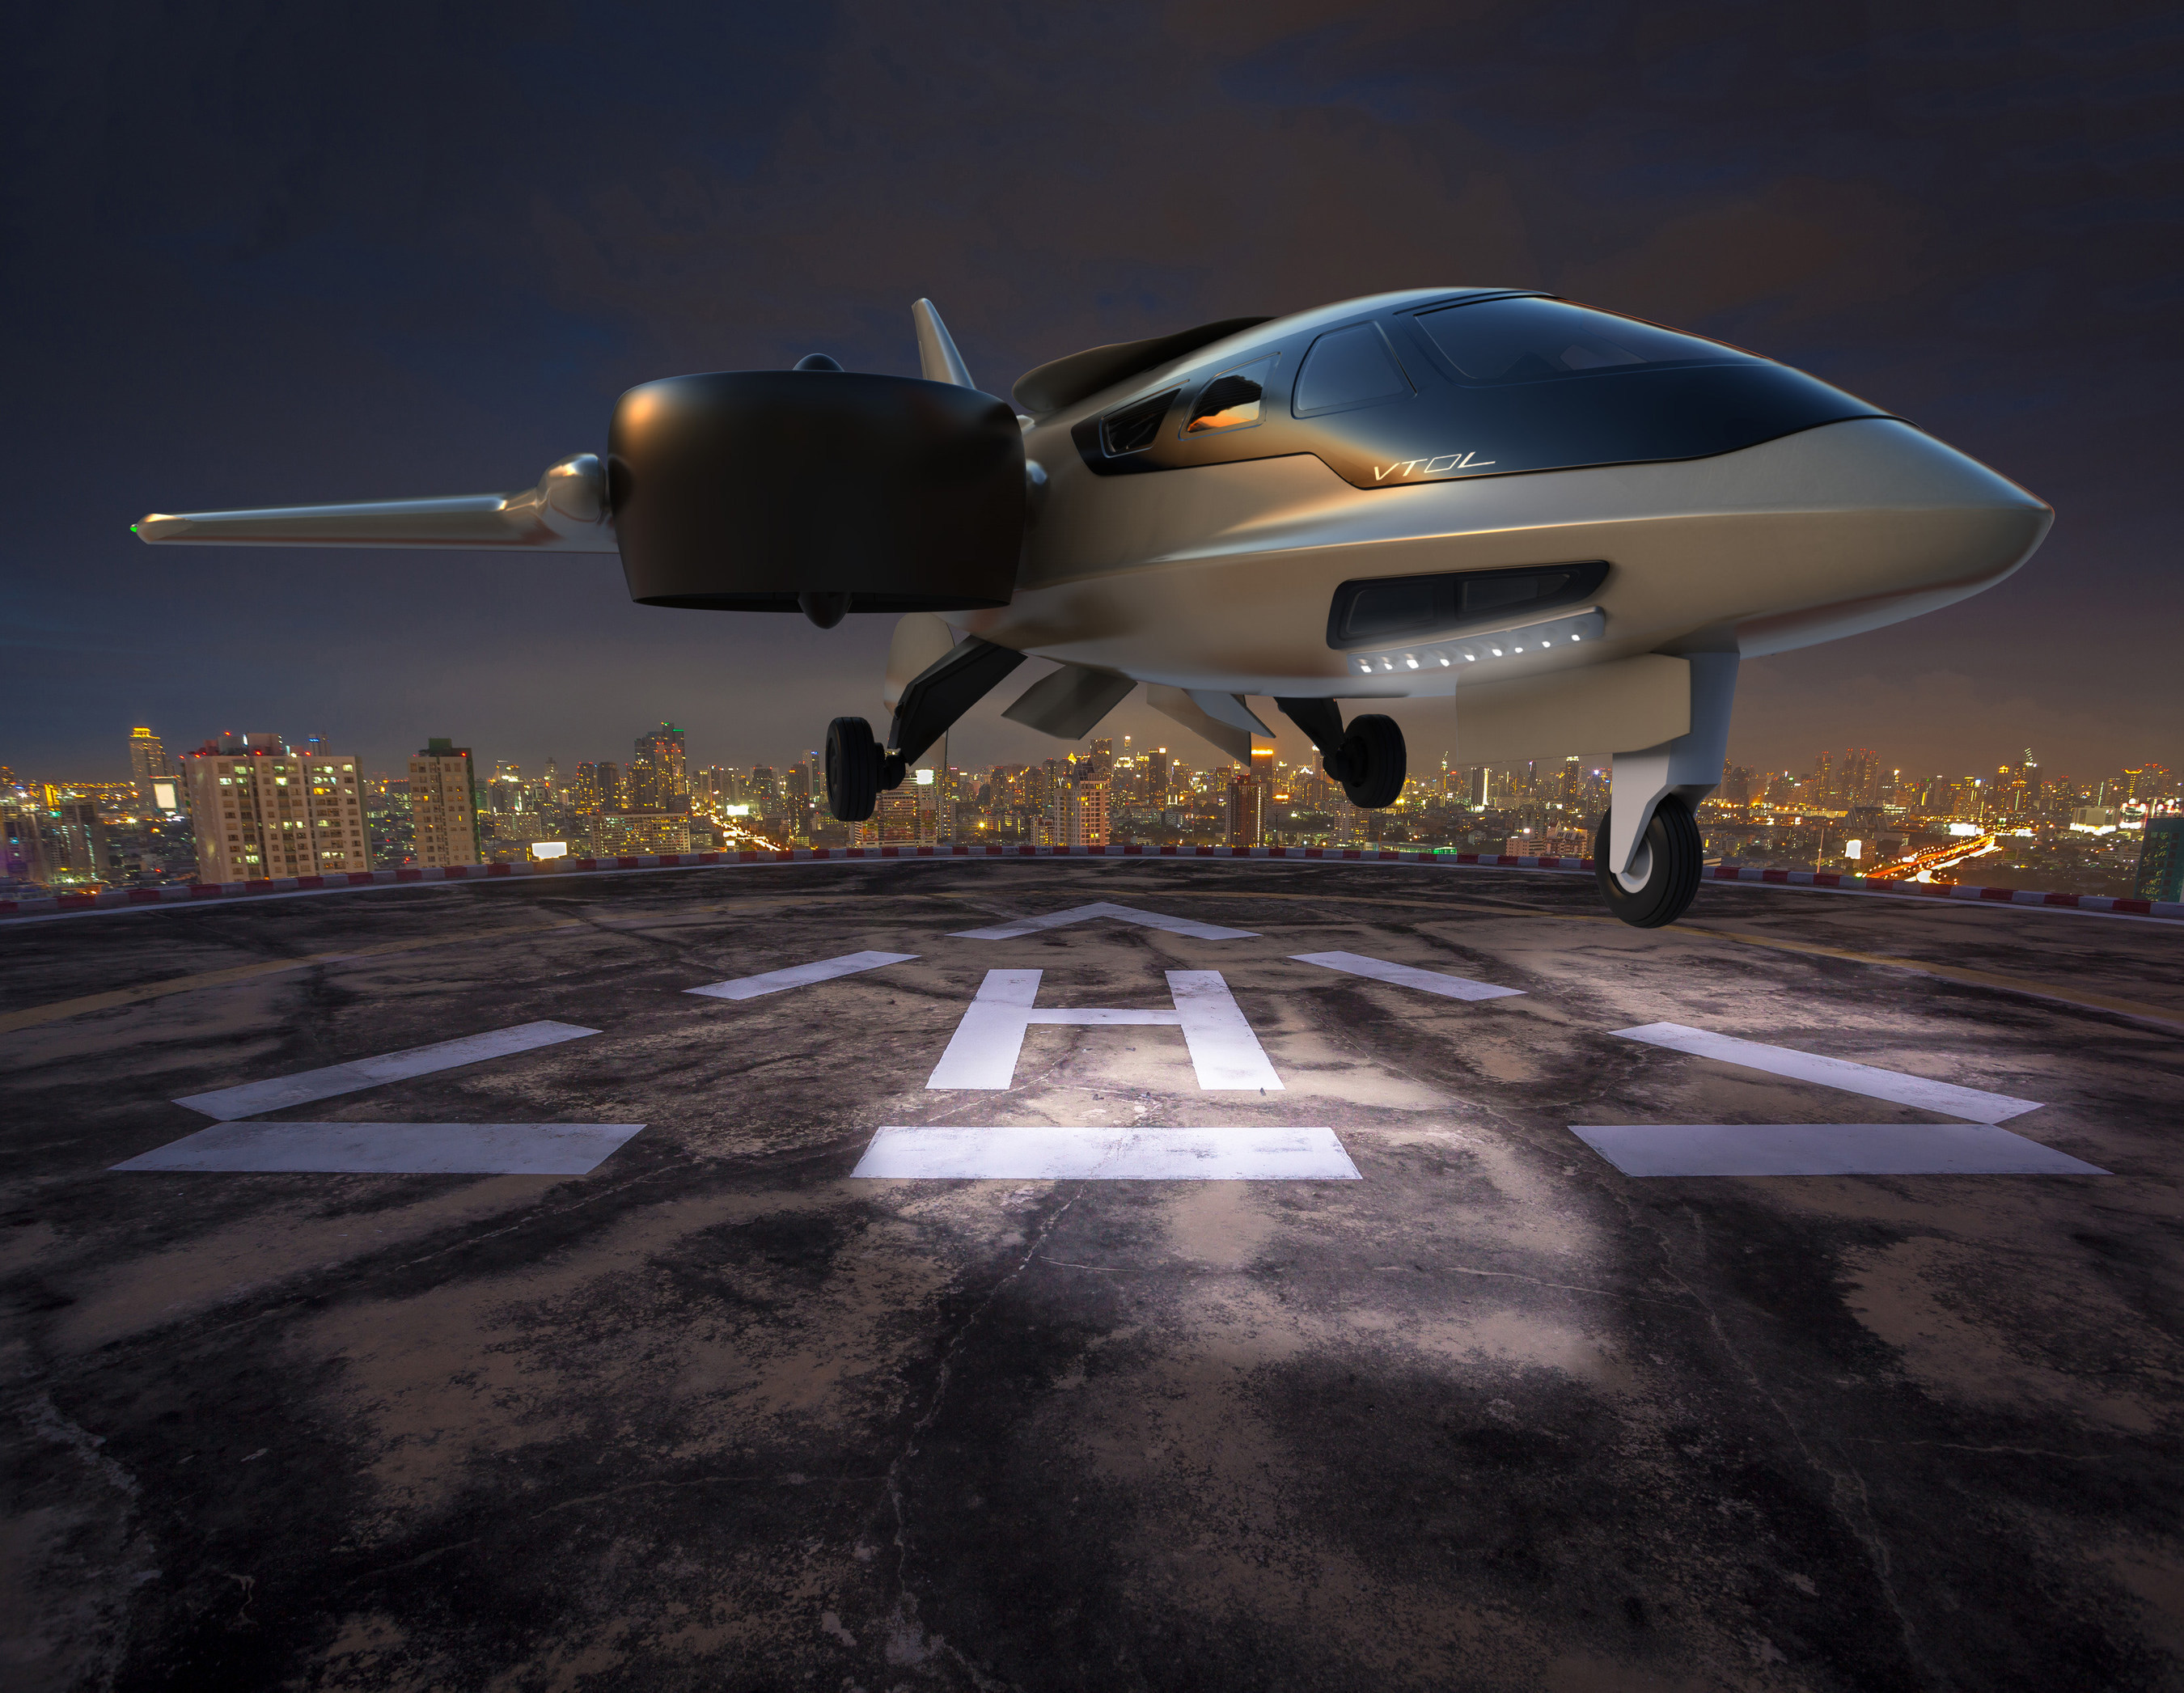 A sleek, futuristic design enhances the appeal of the TriFan 600 from XTI Aircraft Company.